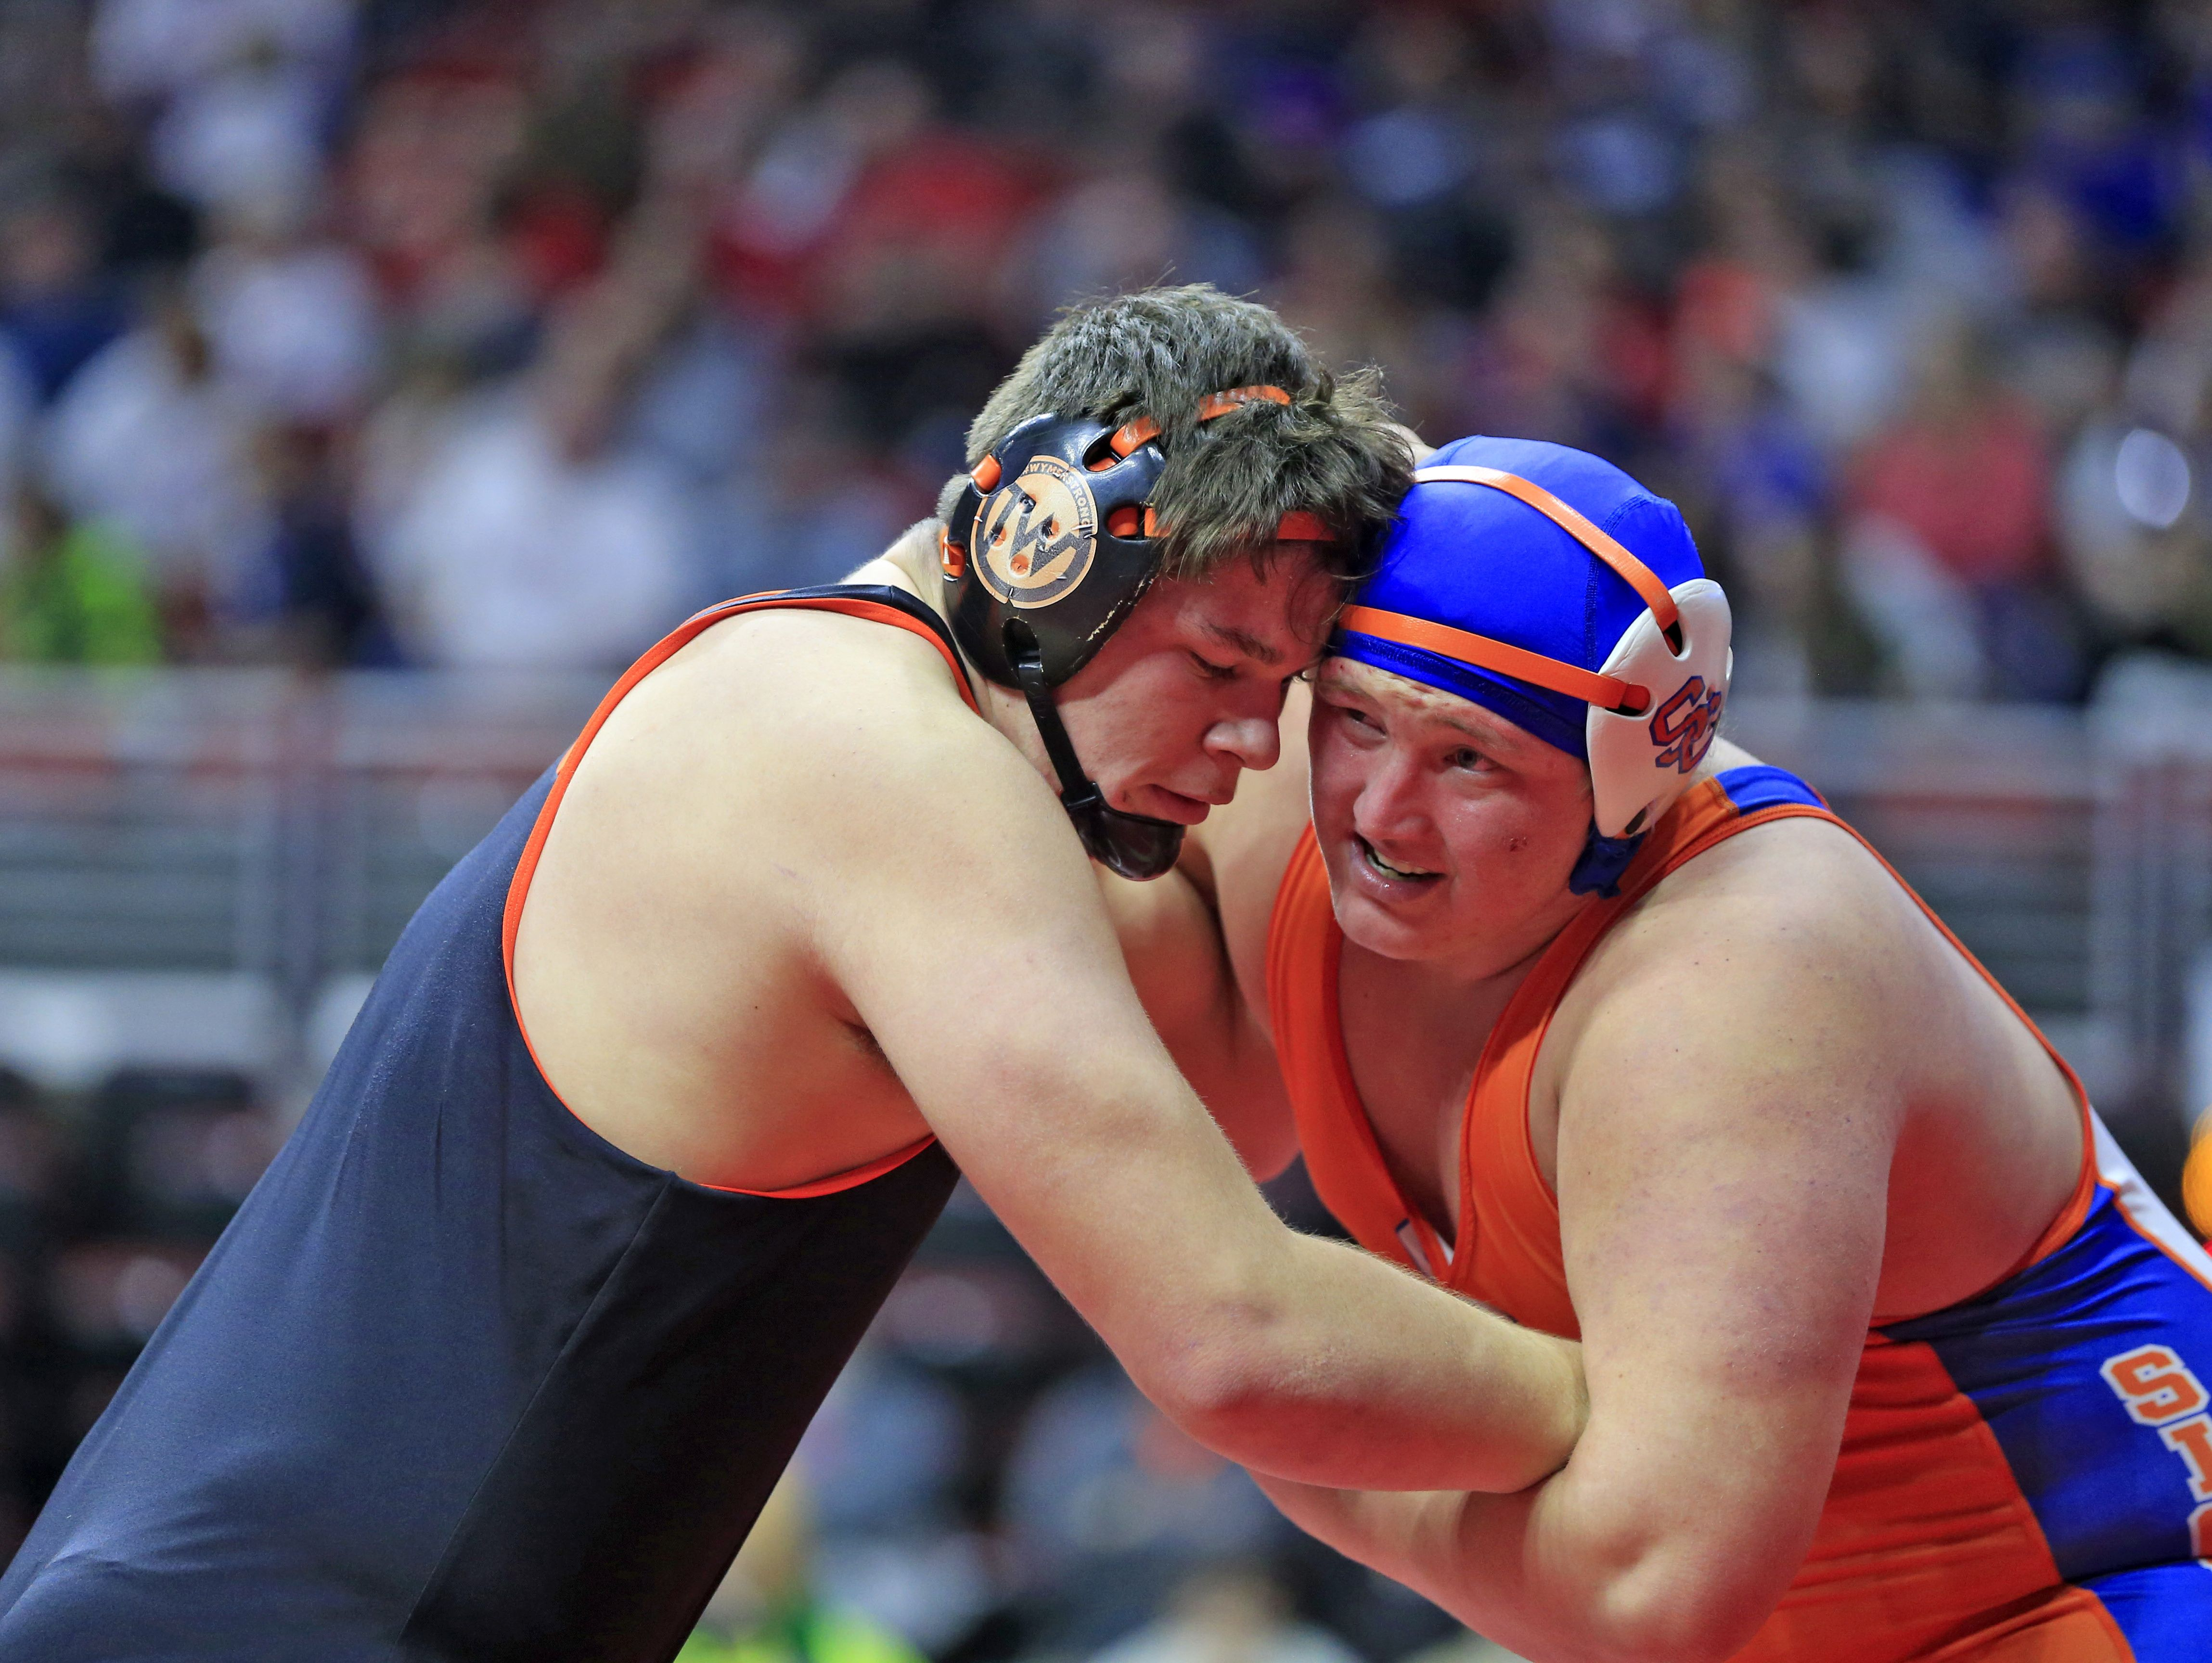 Elijah Van't Hof of Sioux Center wrestles Tyler LinderBaum of Solon at 285 Lbs. Thursday, Feb. 16, 2017.